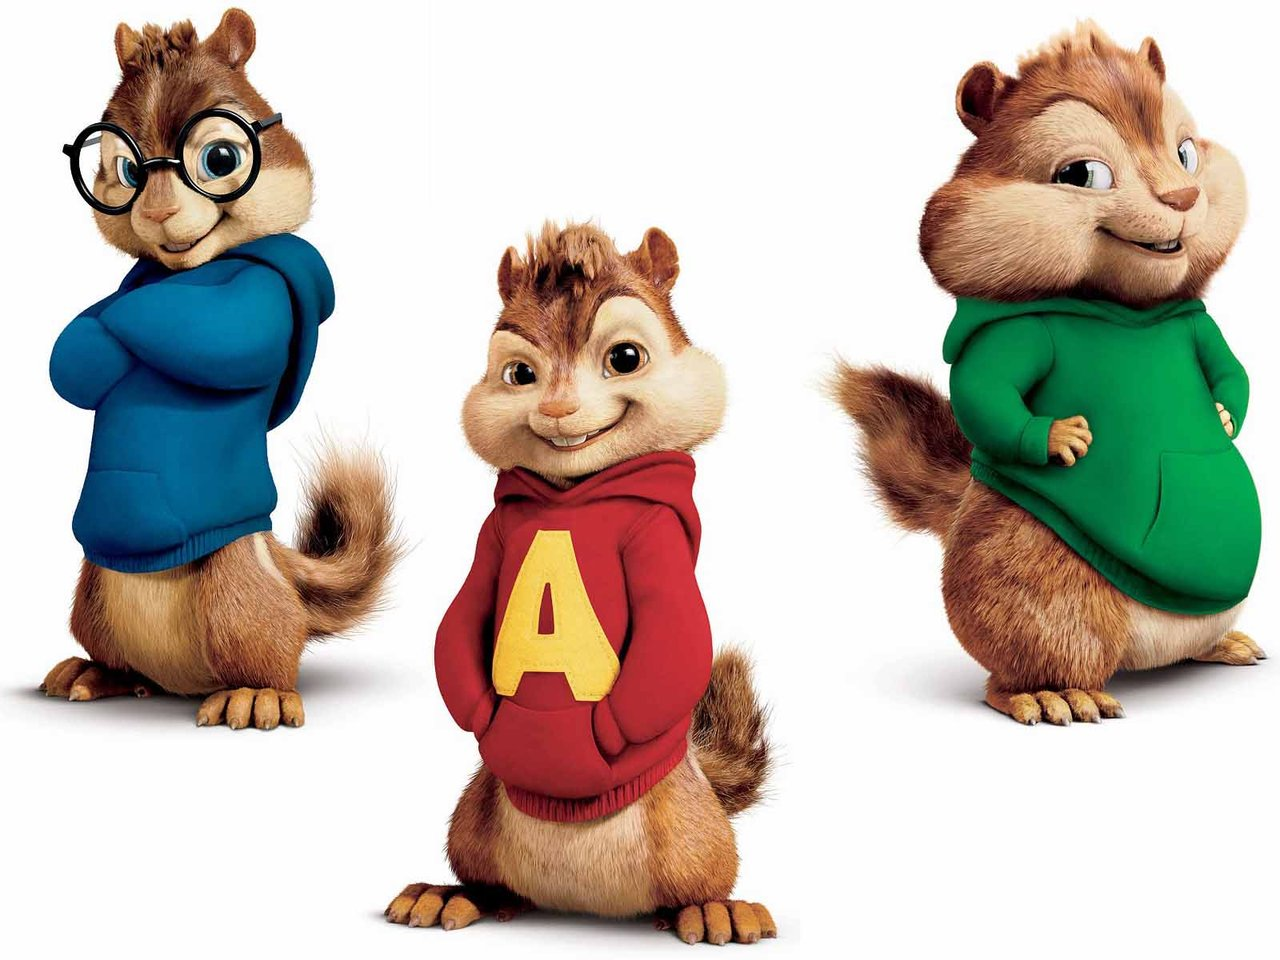 MOVIE REVIEW: Alvin and the Chipmunks, The Squeakquel   My Blog